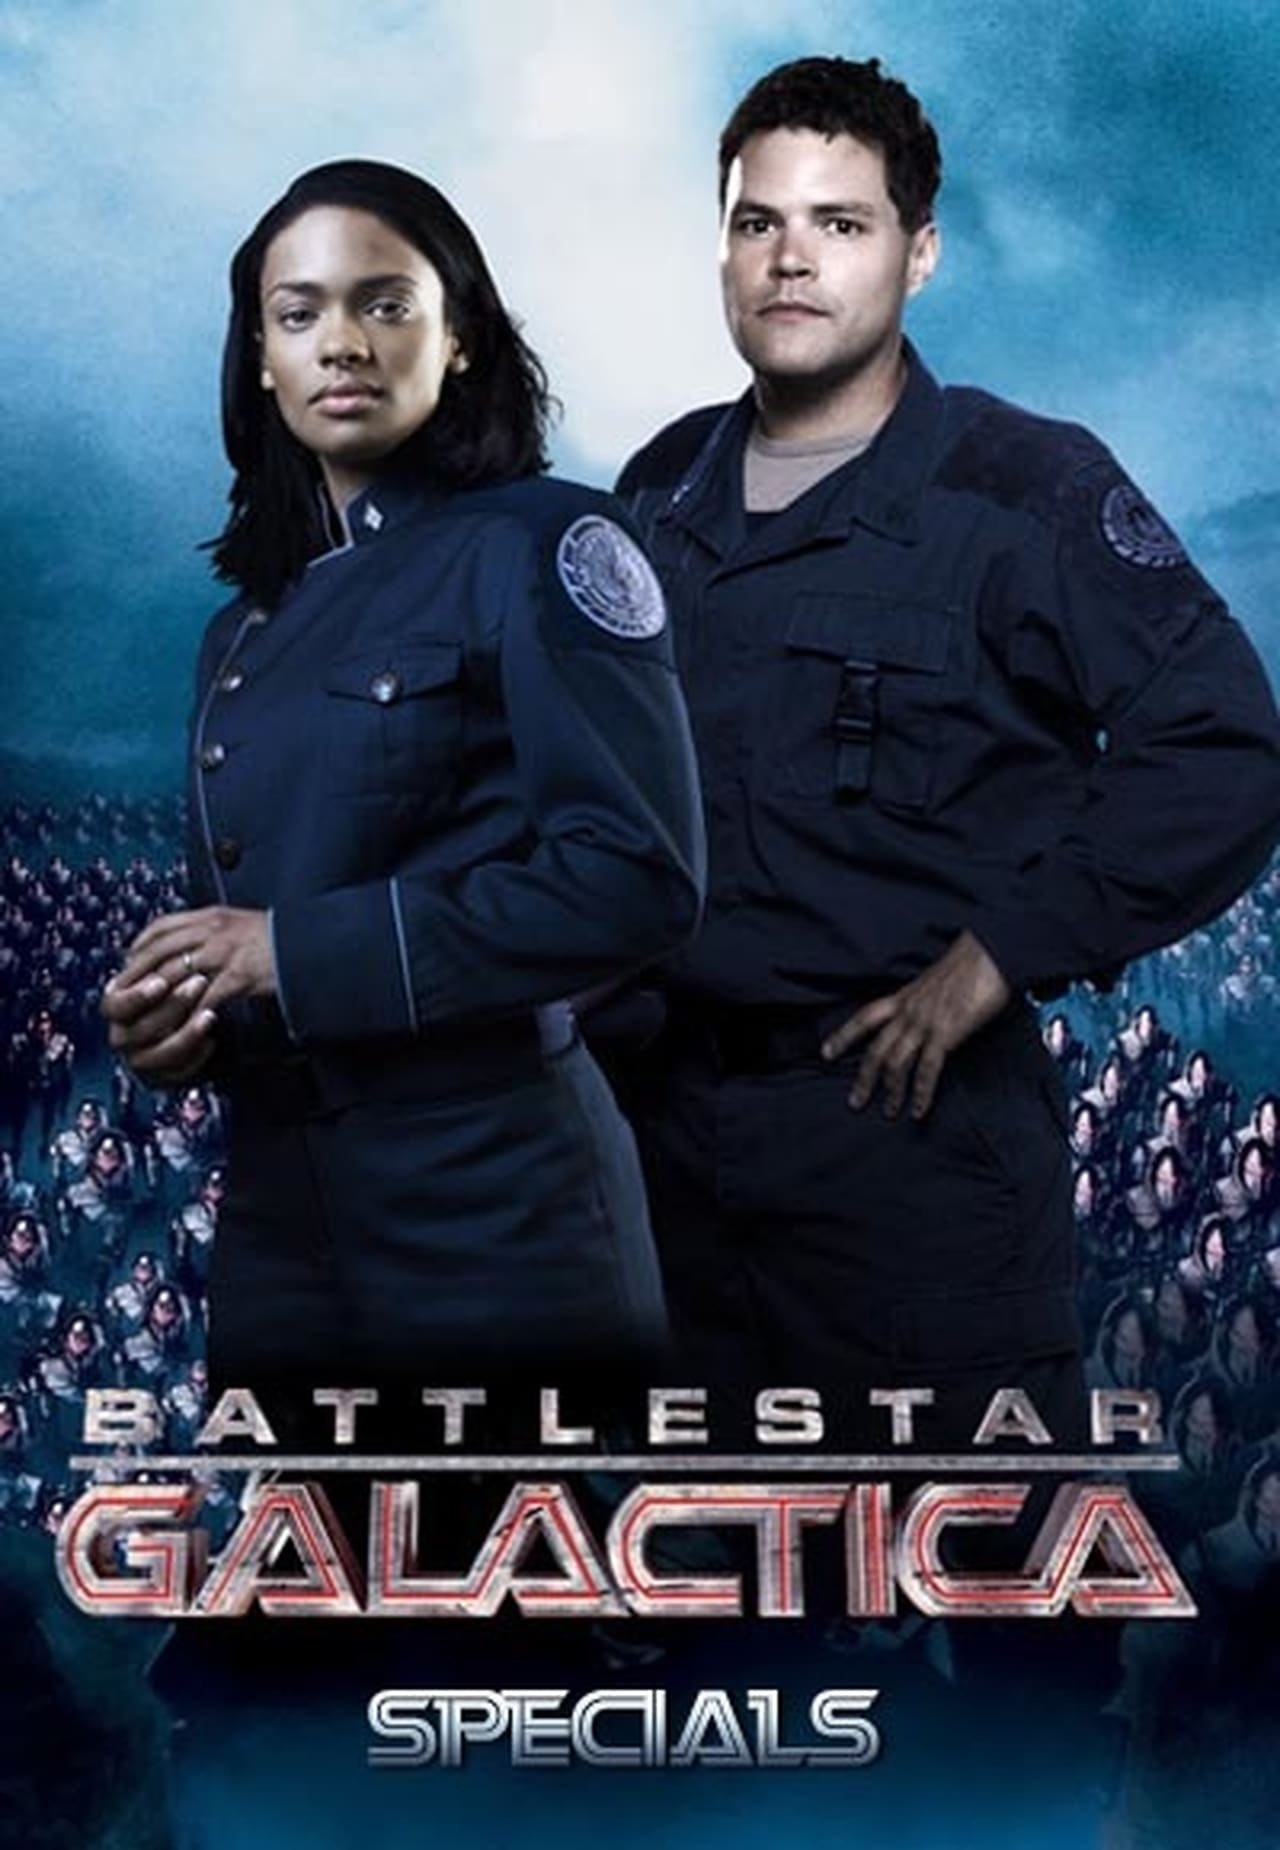 Watch Battlestar Galactica Season 0 Online